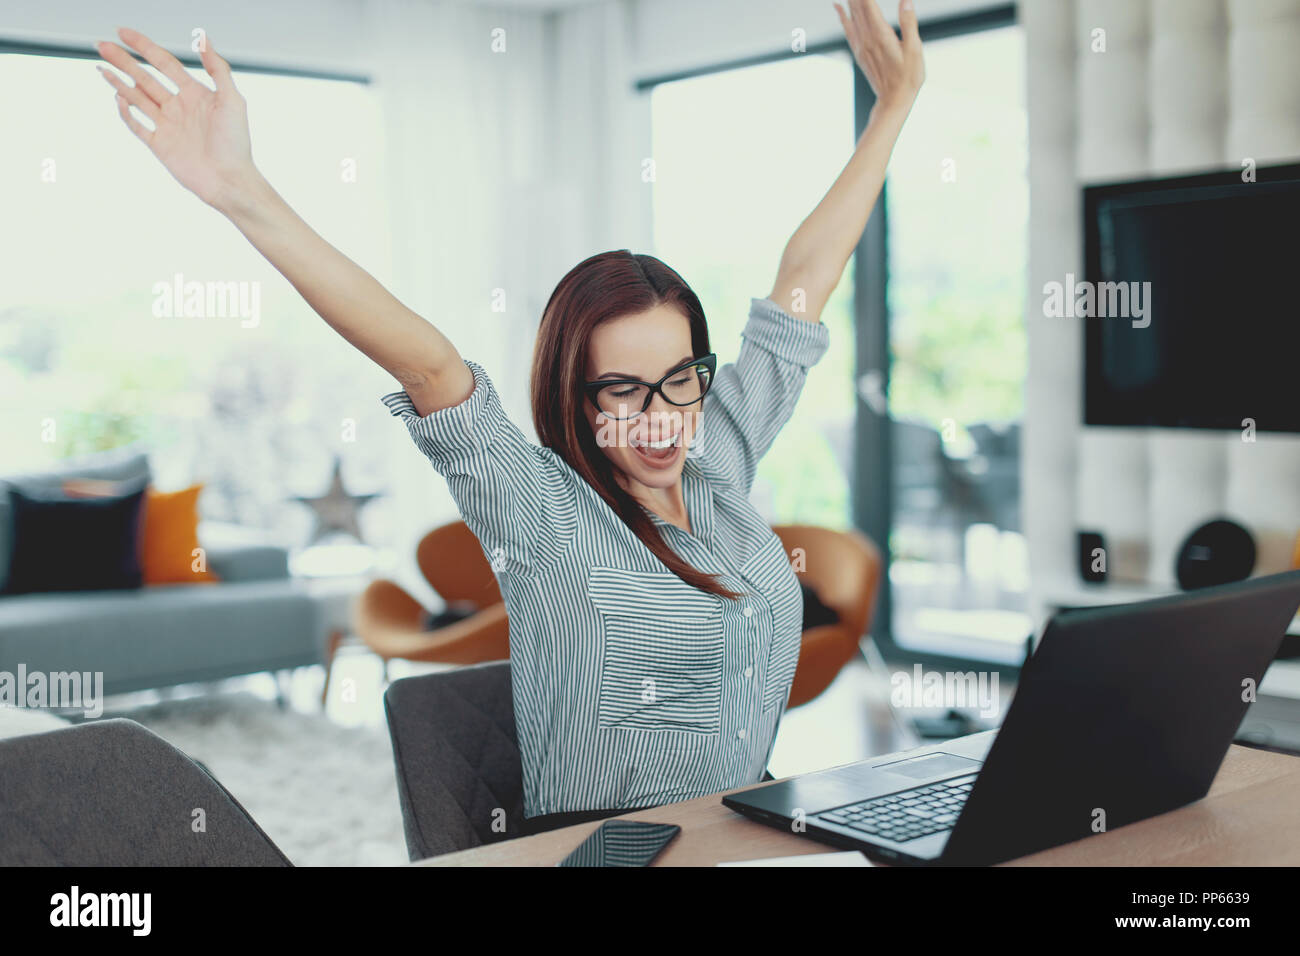 Happy modern nerd woman win at laptop indoors, success and happiness, arms raised - Stock Image